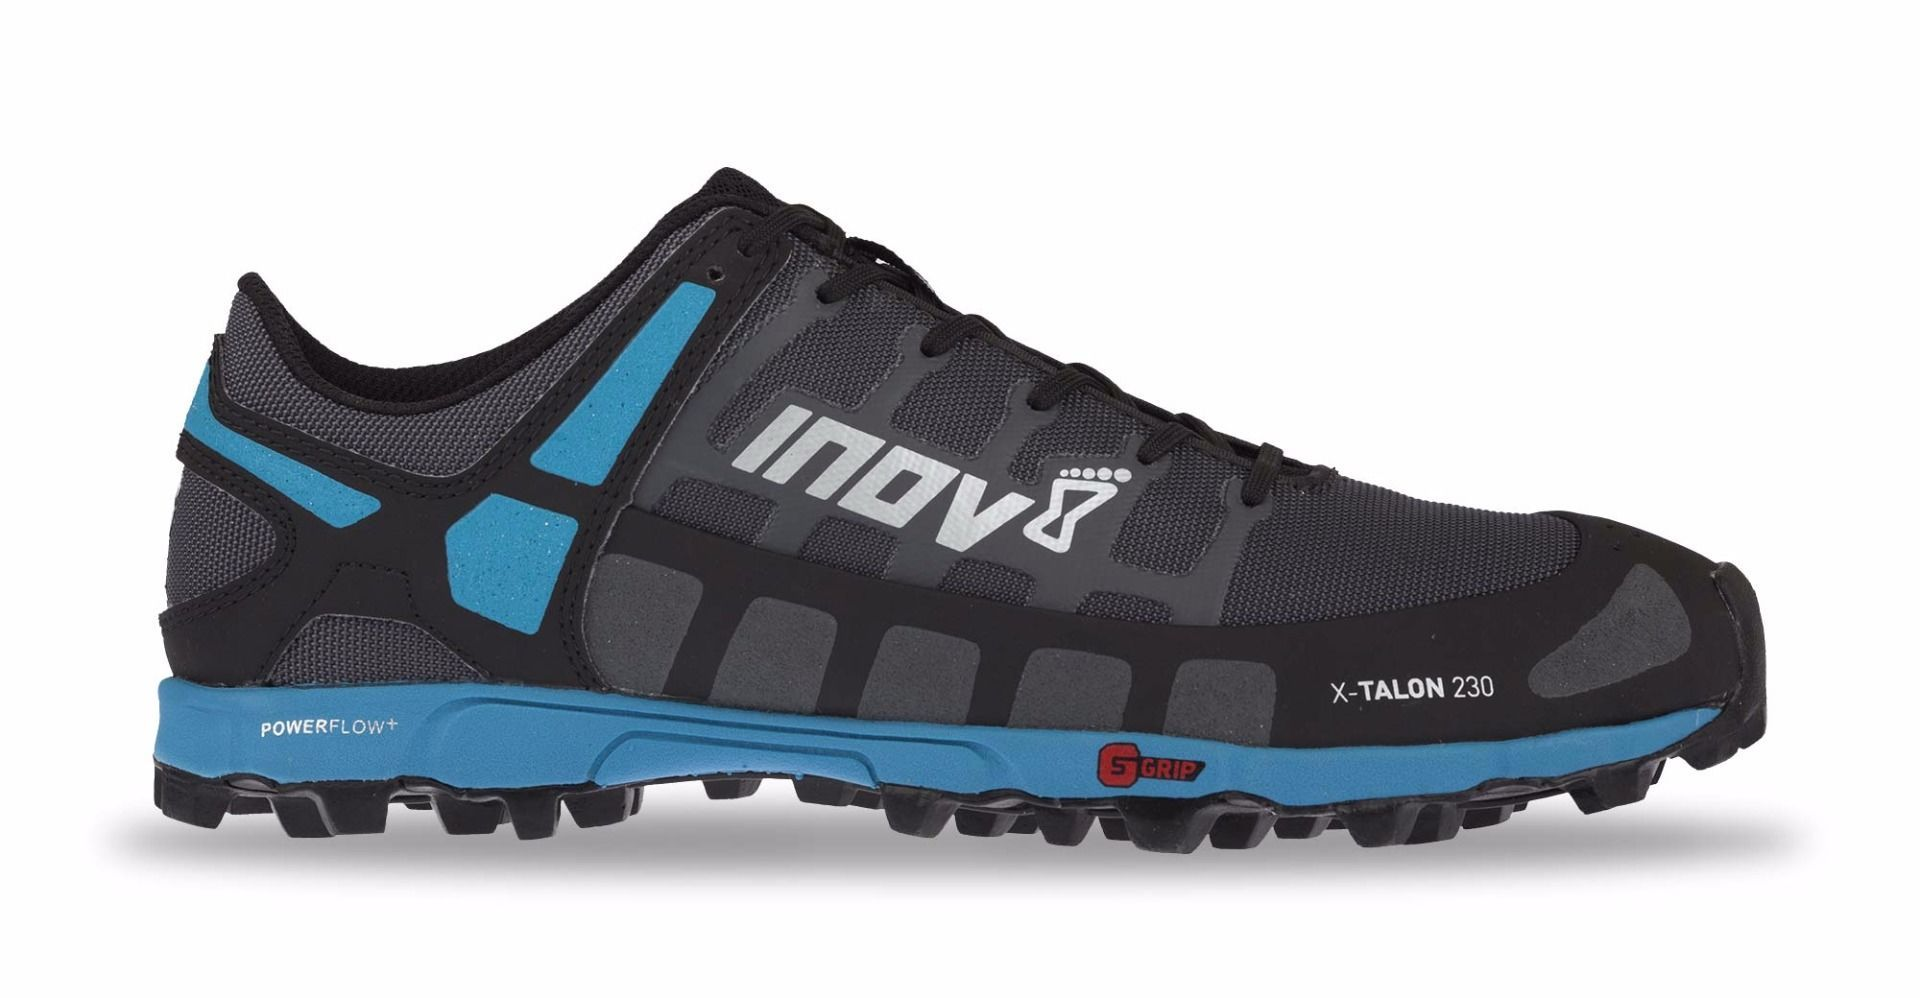 The best racing running shoes on the